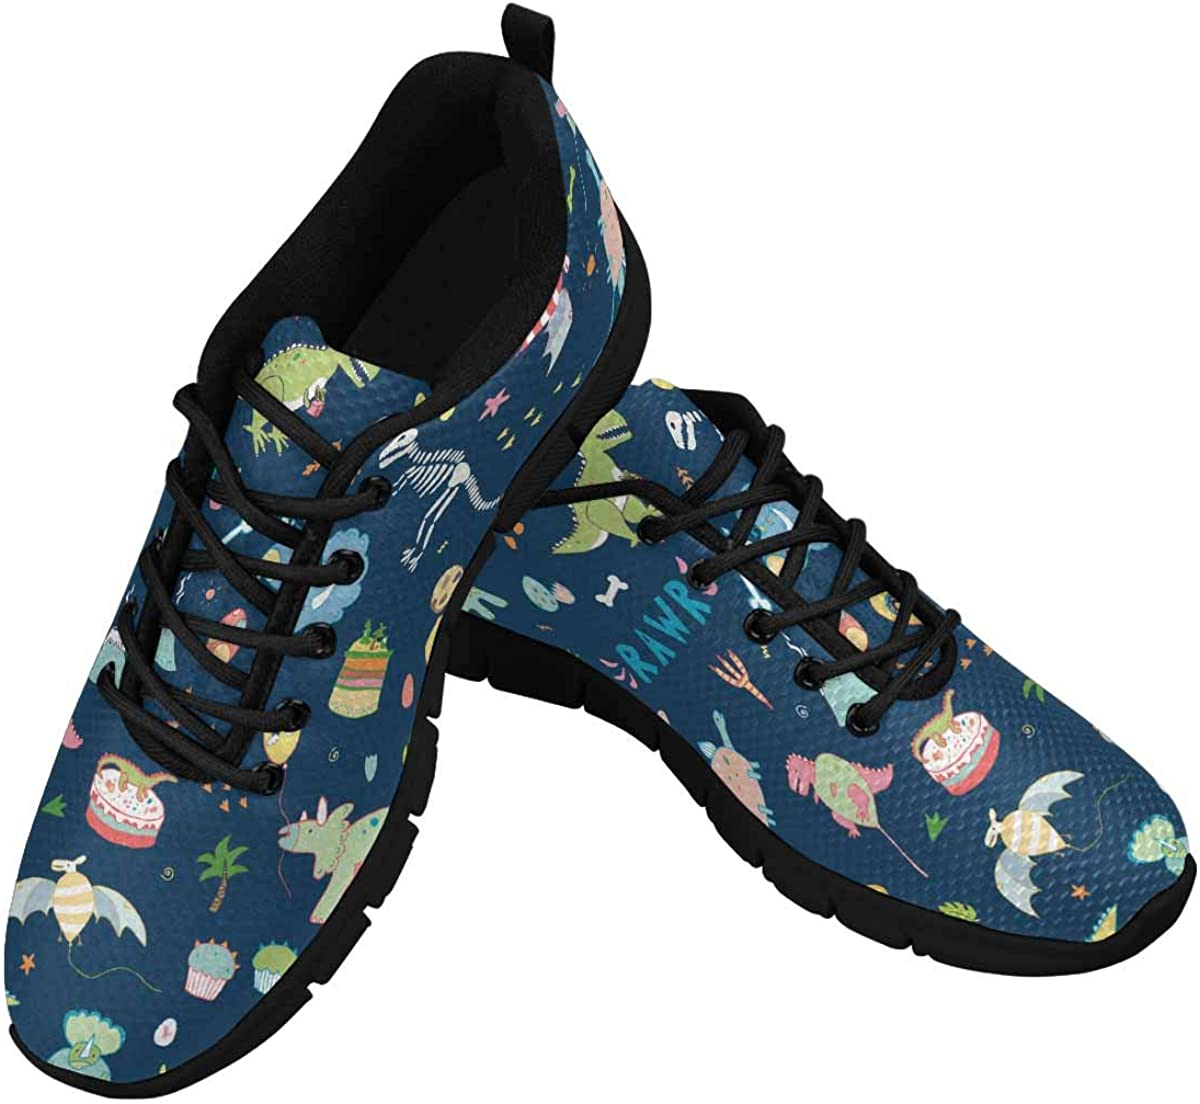 InterestPrint Dinosaur Party Women's Lightweight Sneakers Mesh Breathable Yoga Shoes